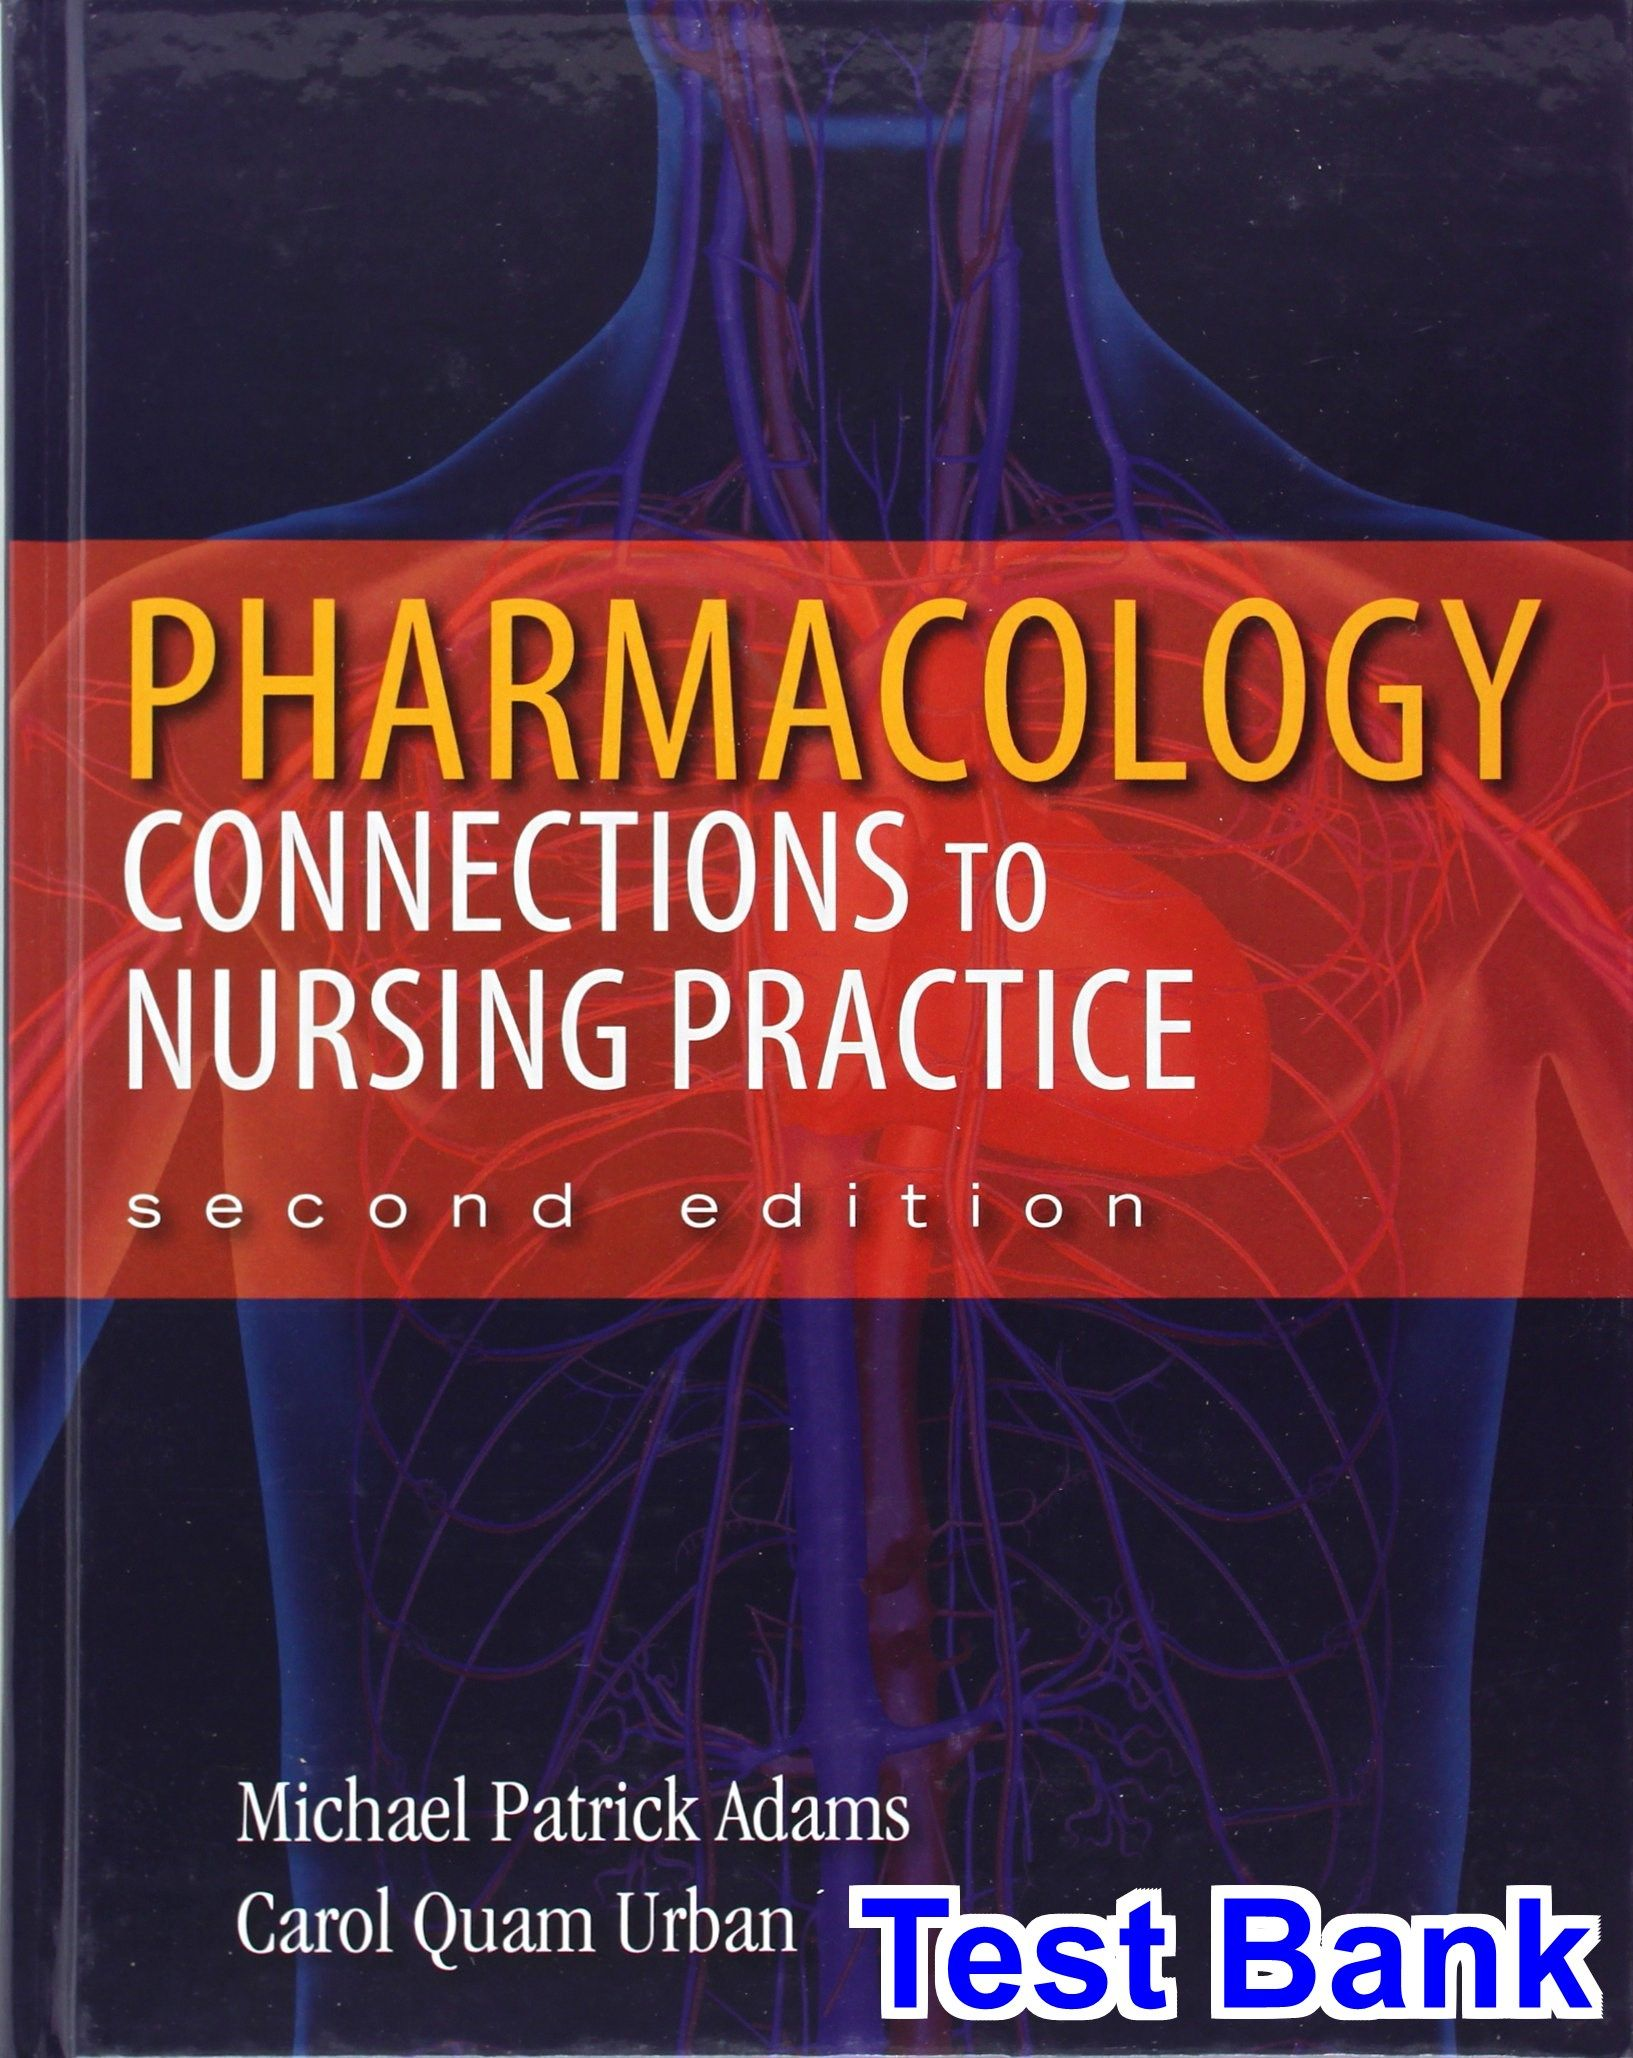 Free Test Bank For Pharmacology Connections To Nursing Practice 2nd